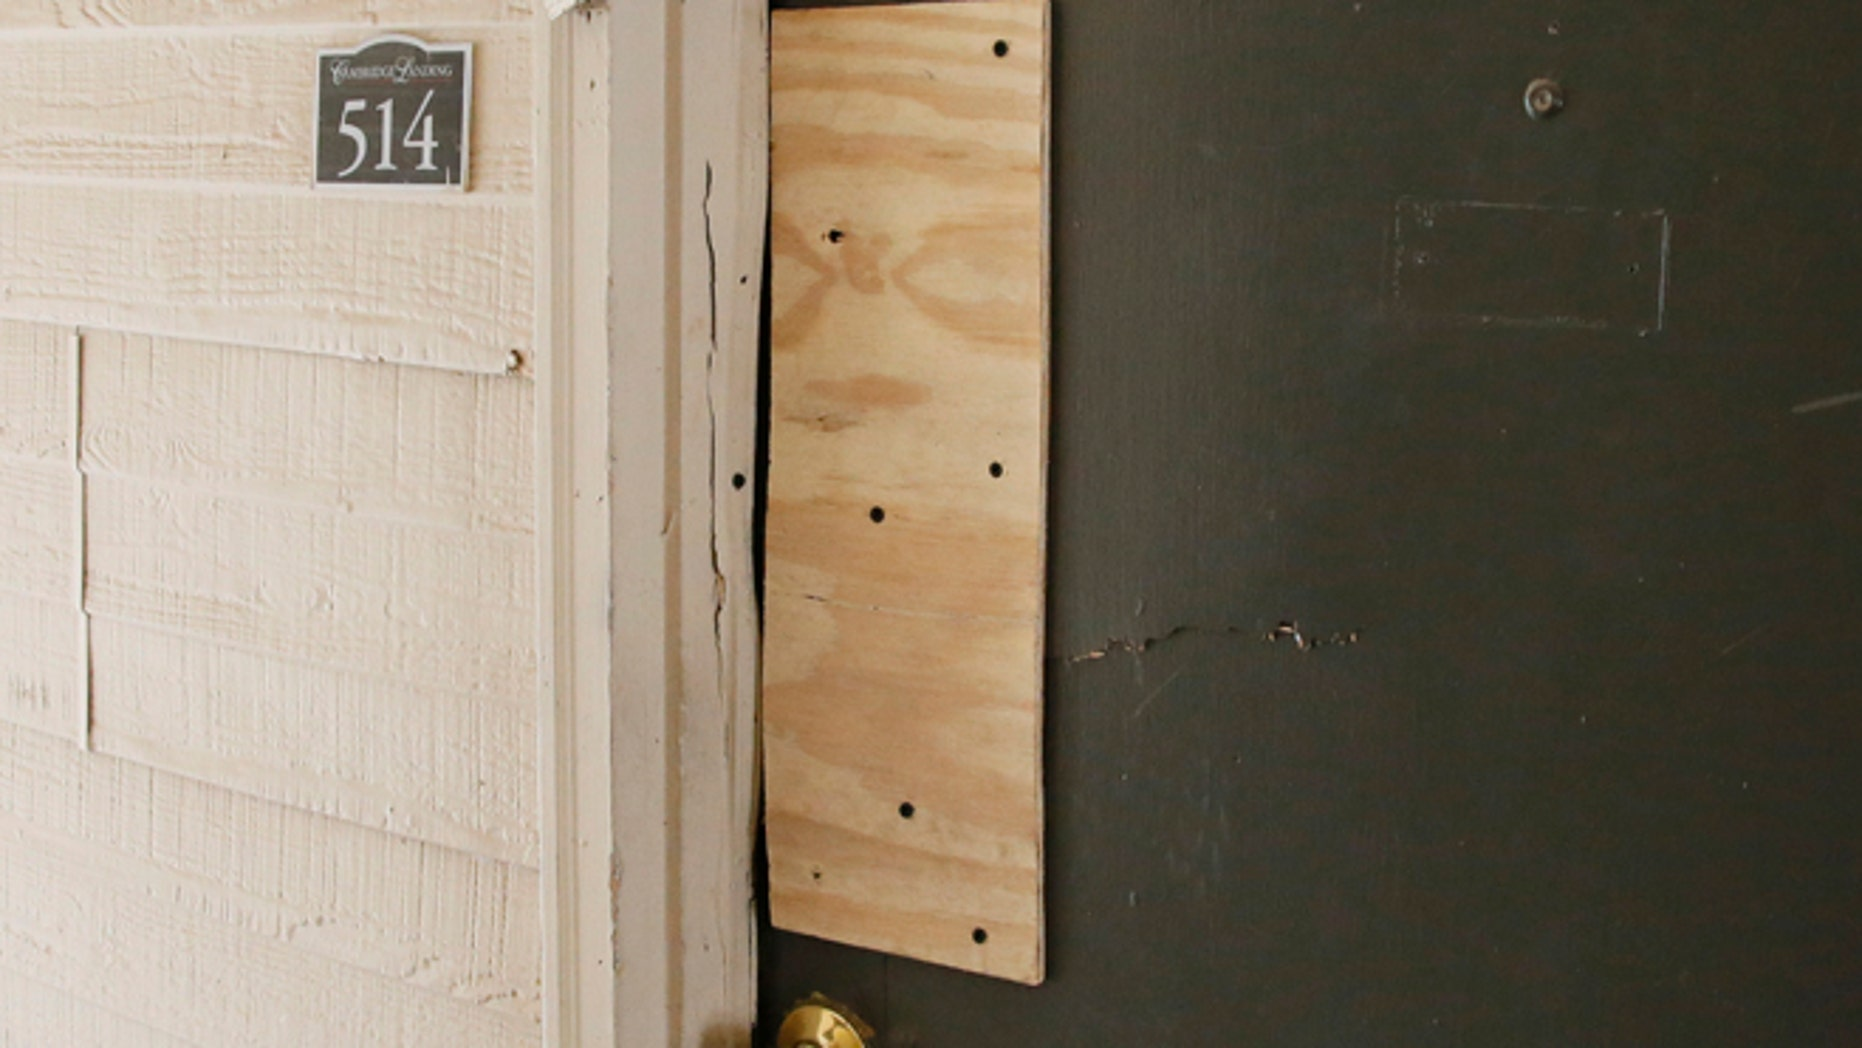 The boarded-up door of an apartment where Oklahoma City police have arrested a mother on suspicion of stabbing a man and her two children, the youngest of which was pronounced dead when police arrived on scene, is pictured in Oklahoma City, Monday, July 11, 2016. (AP Photo/Sue Ogrocki)